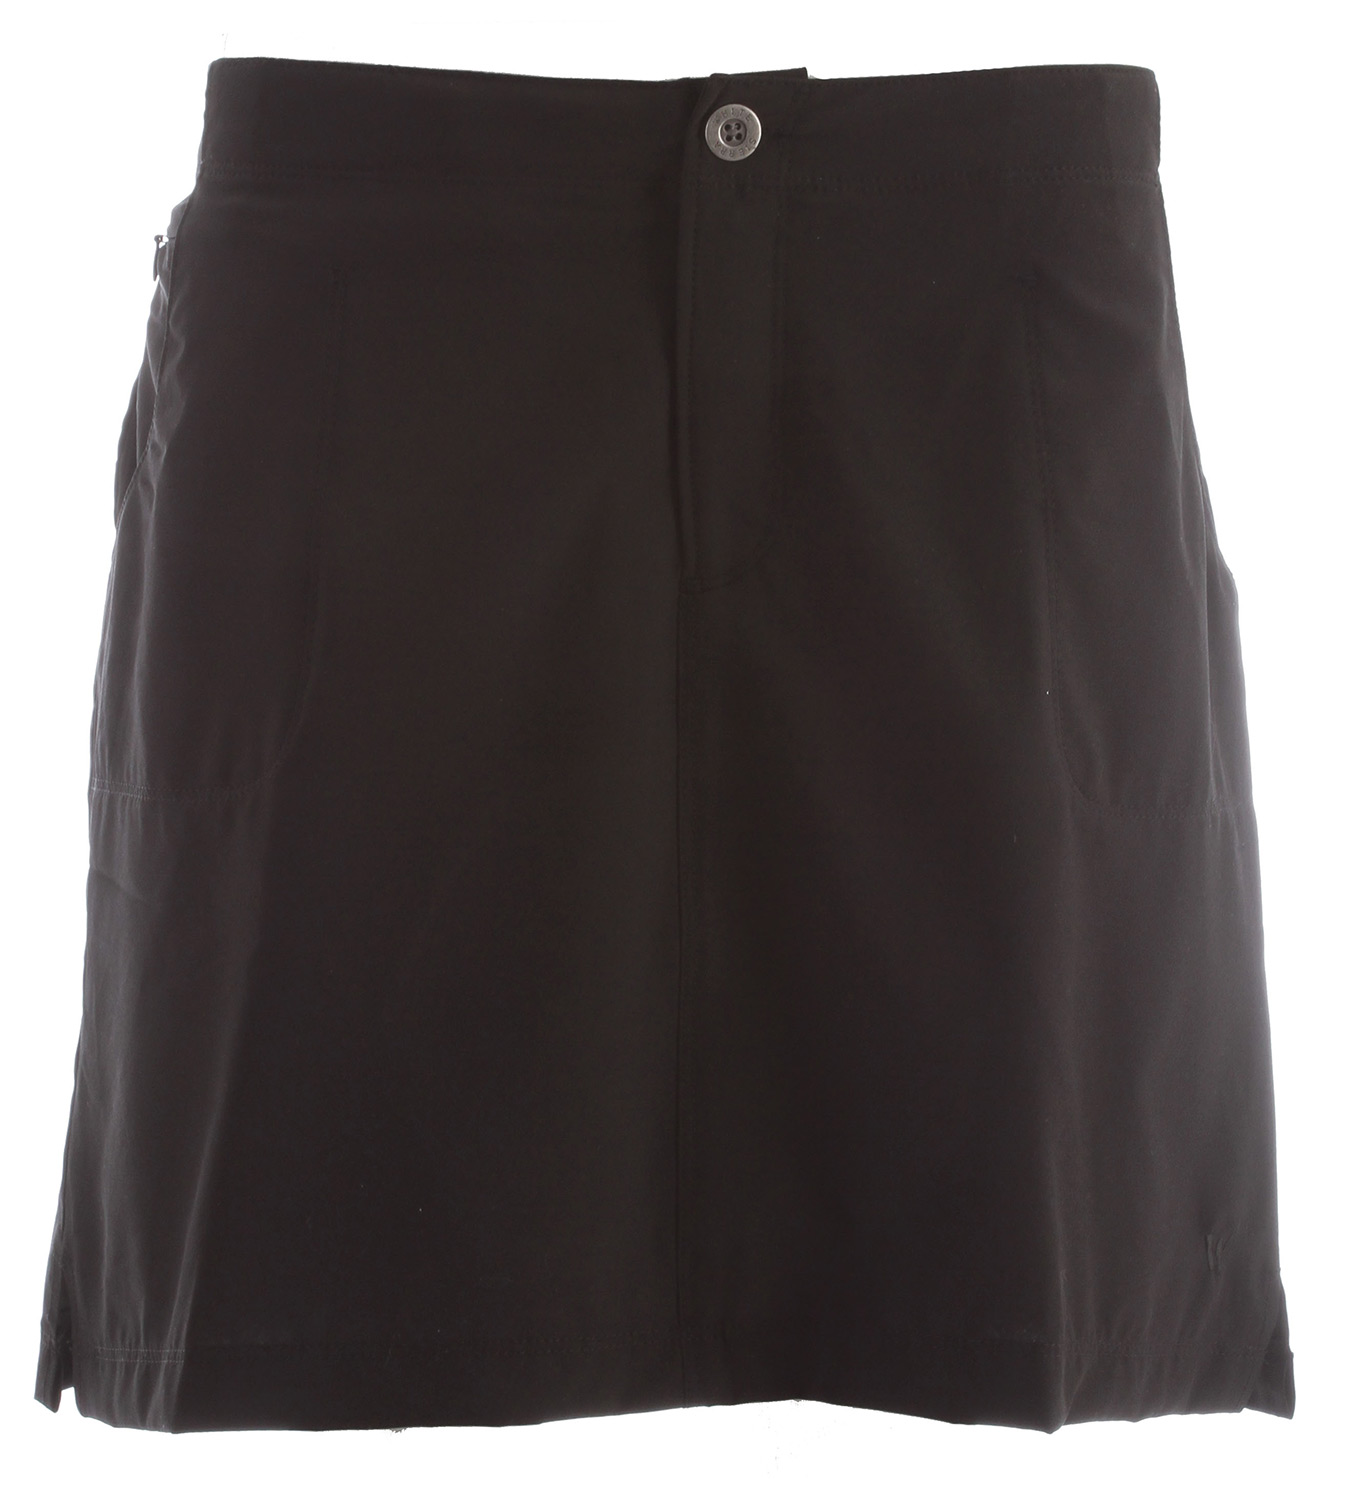 "Key Features of the White Sierra West Loop Trail Skort: HEADLANDS CLOTH 92% polyester 8% elastane soft poplin woven Sun protection fabric Travel friendly Comfort fit back elastic Attached interior shorts Zip secure hip pocket Fabric weight: 3.5oz Skirt length: 17"" Short inseam: 5.5"" - $36.00"